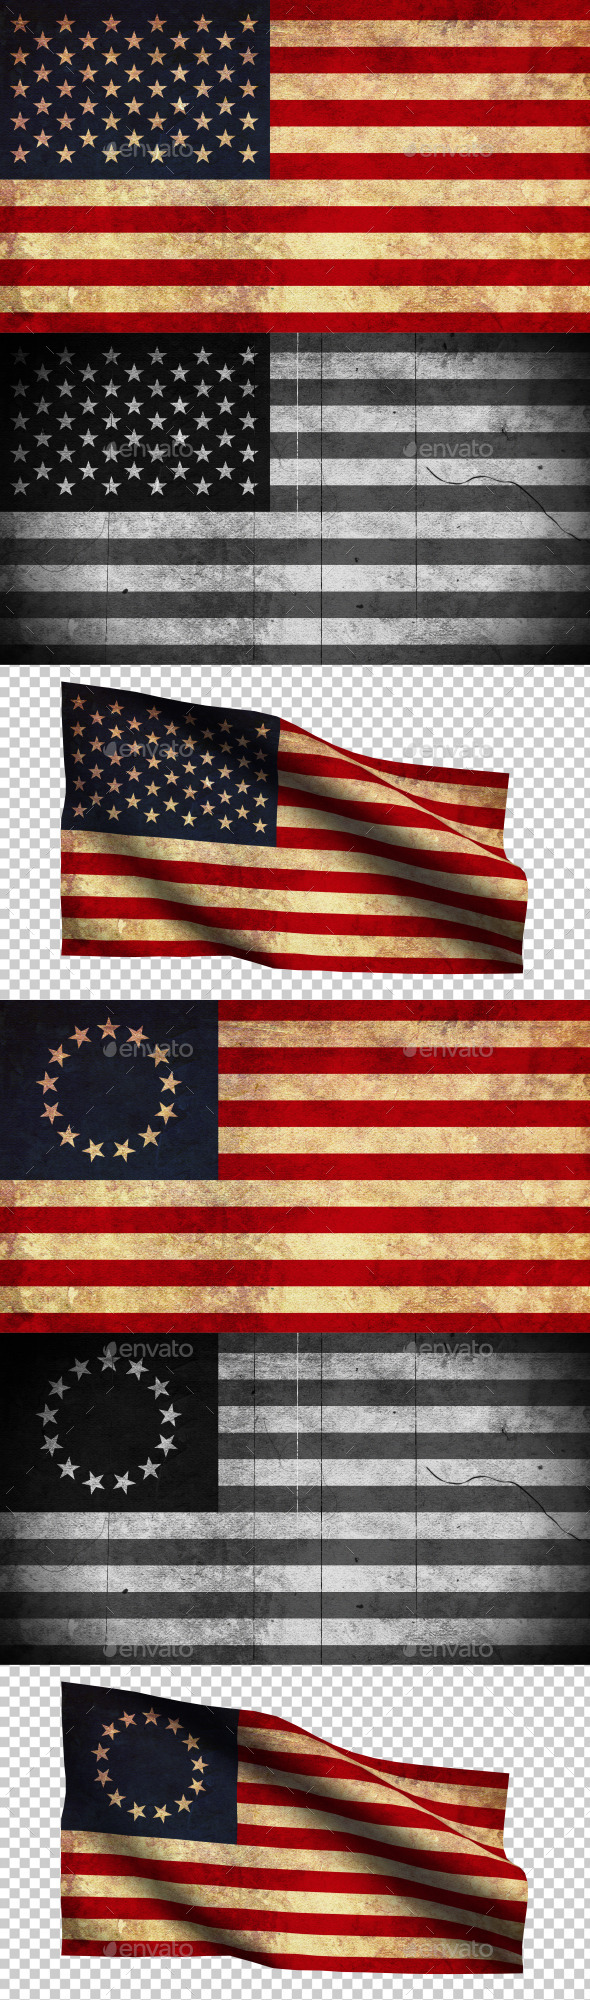 USA Flag Grunge and Retro